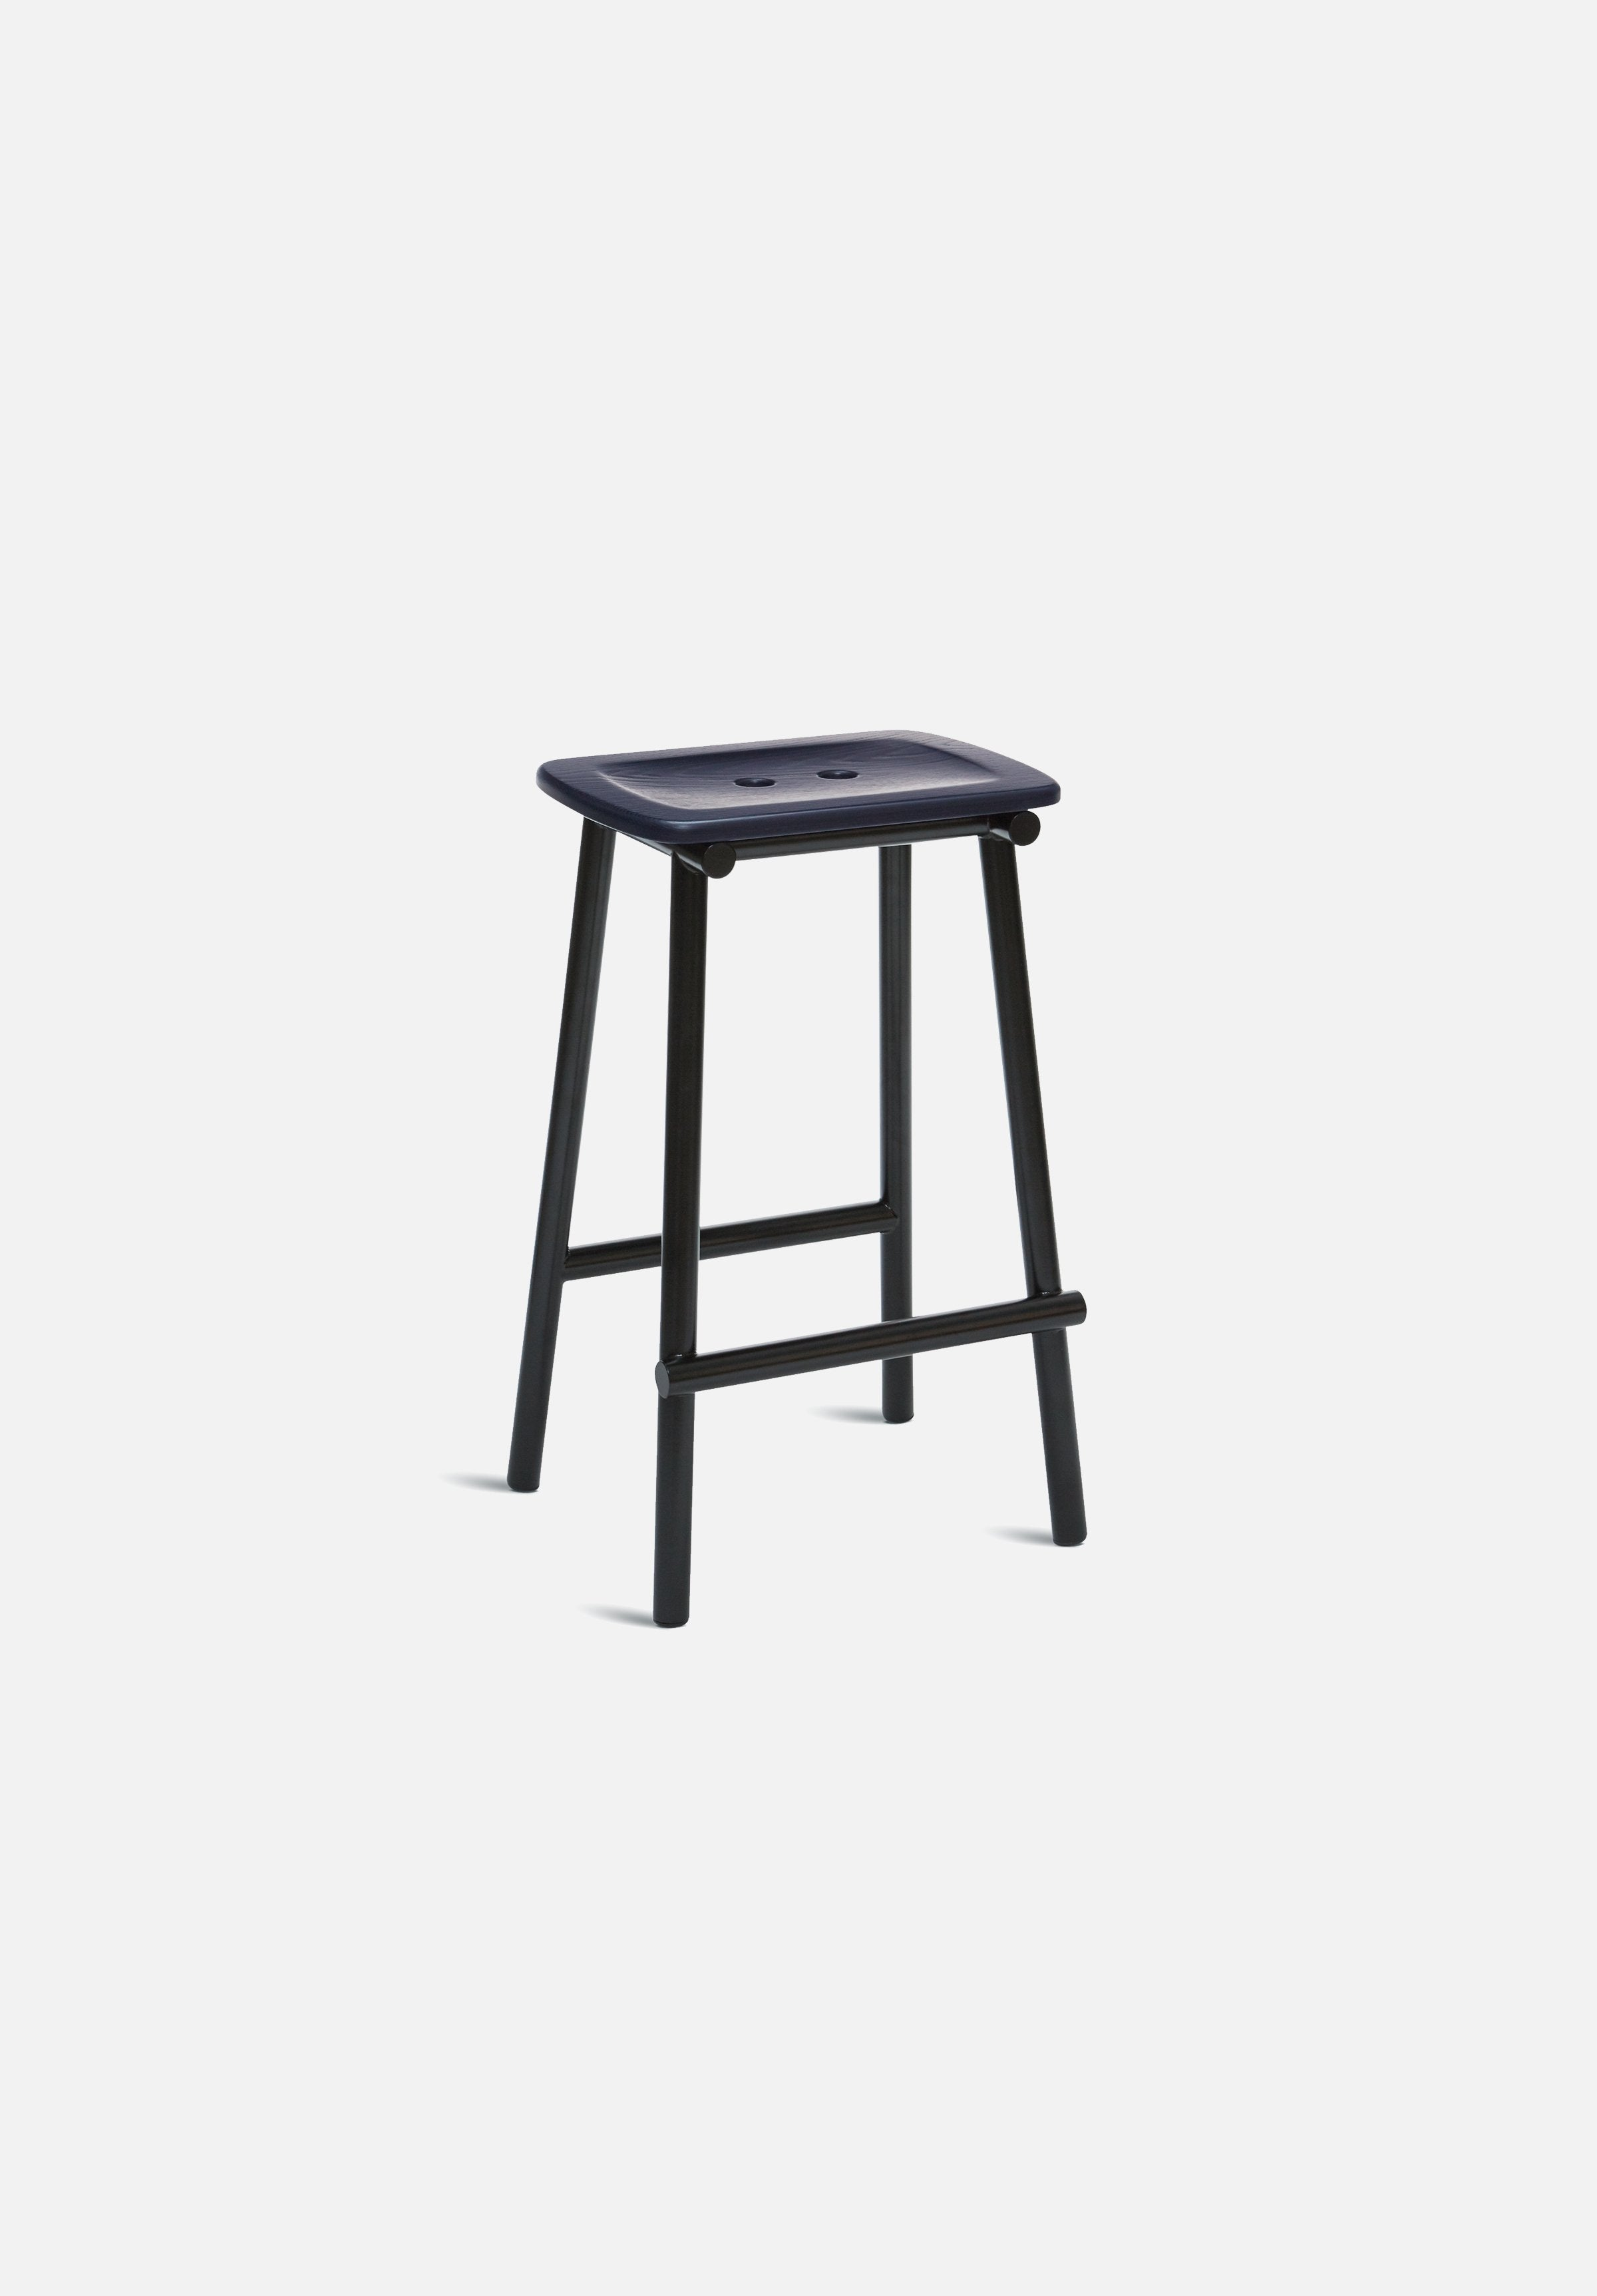 Tubby Counter Stool-Faye Toogood-Please Wait to be Seated-Painted Navy Ash-Average